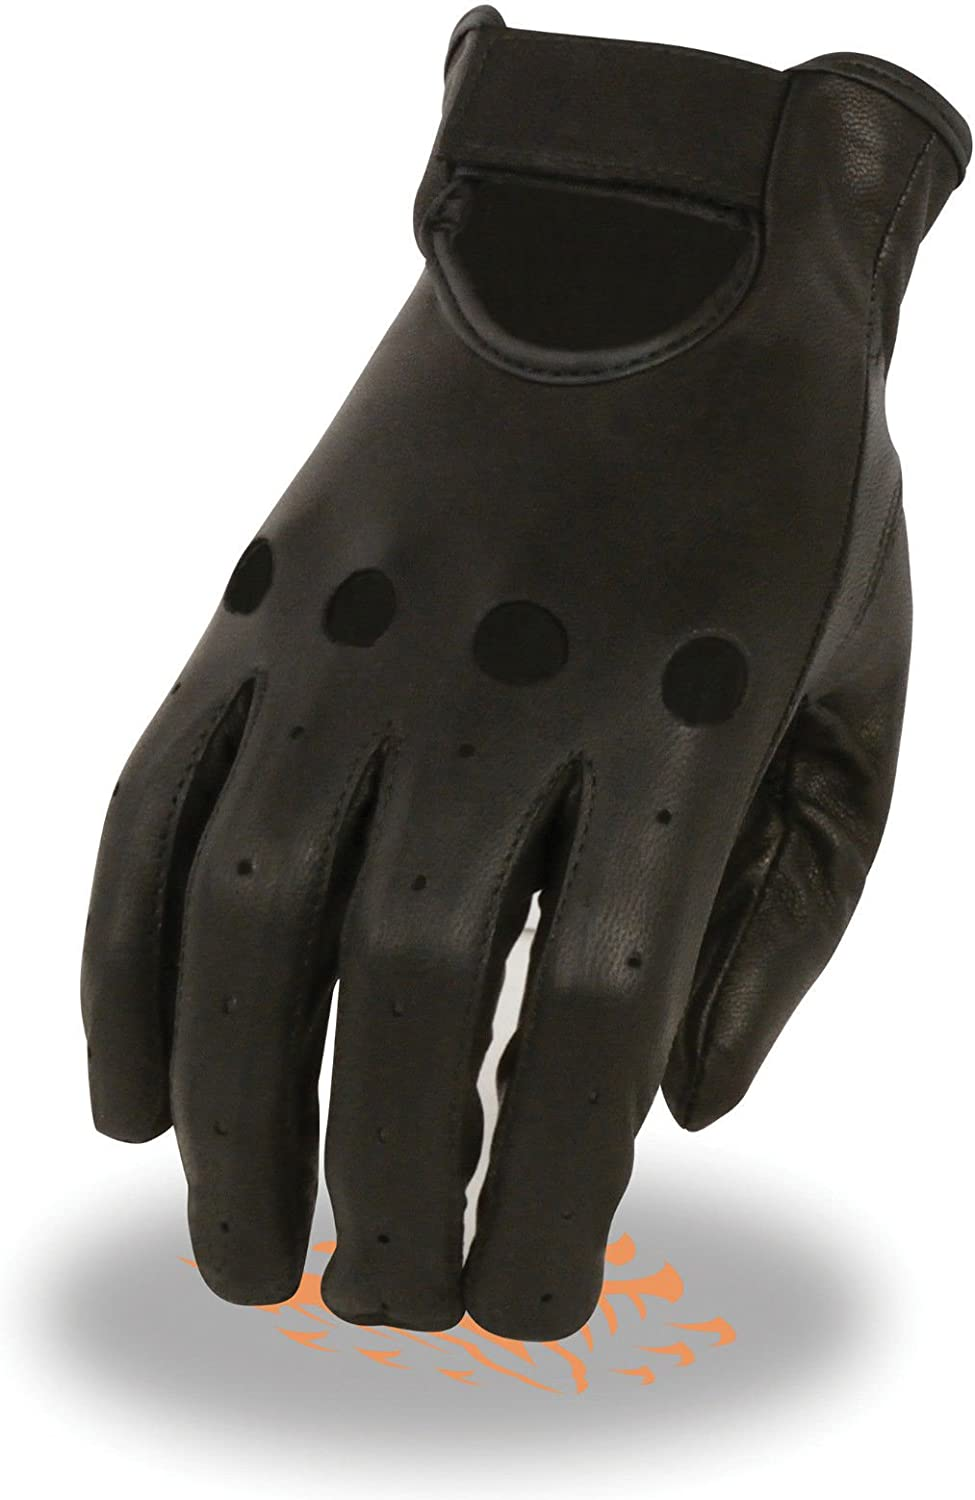 Shaf Motorcycle Women's Perforated Light Weight Driving Unlined Blk Leather Gloves (Regular)